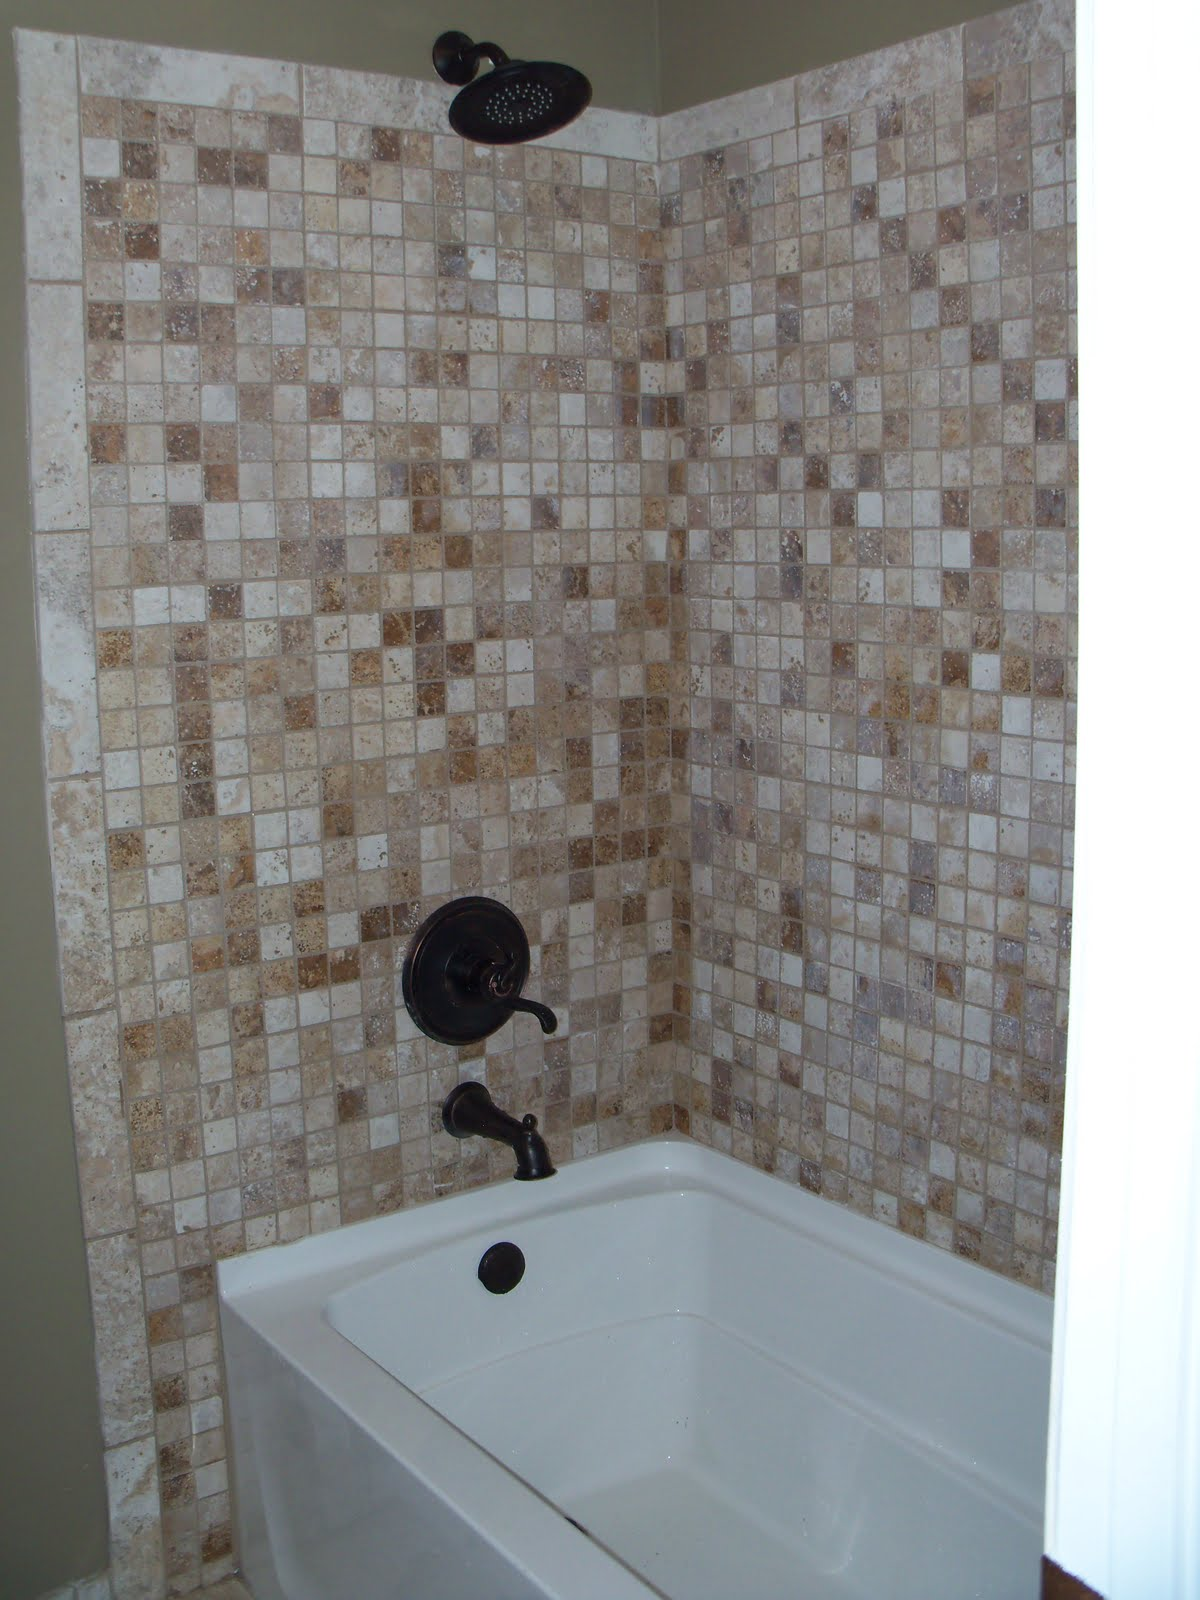 Ceramic Tile Bath Tubs | OnlineTips.org